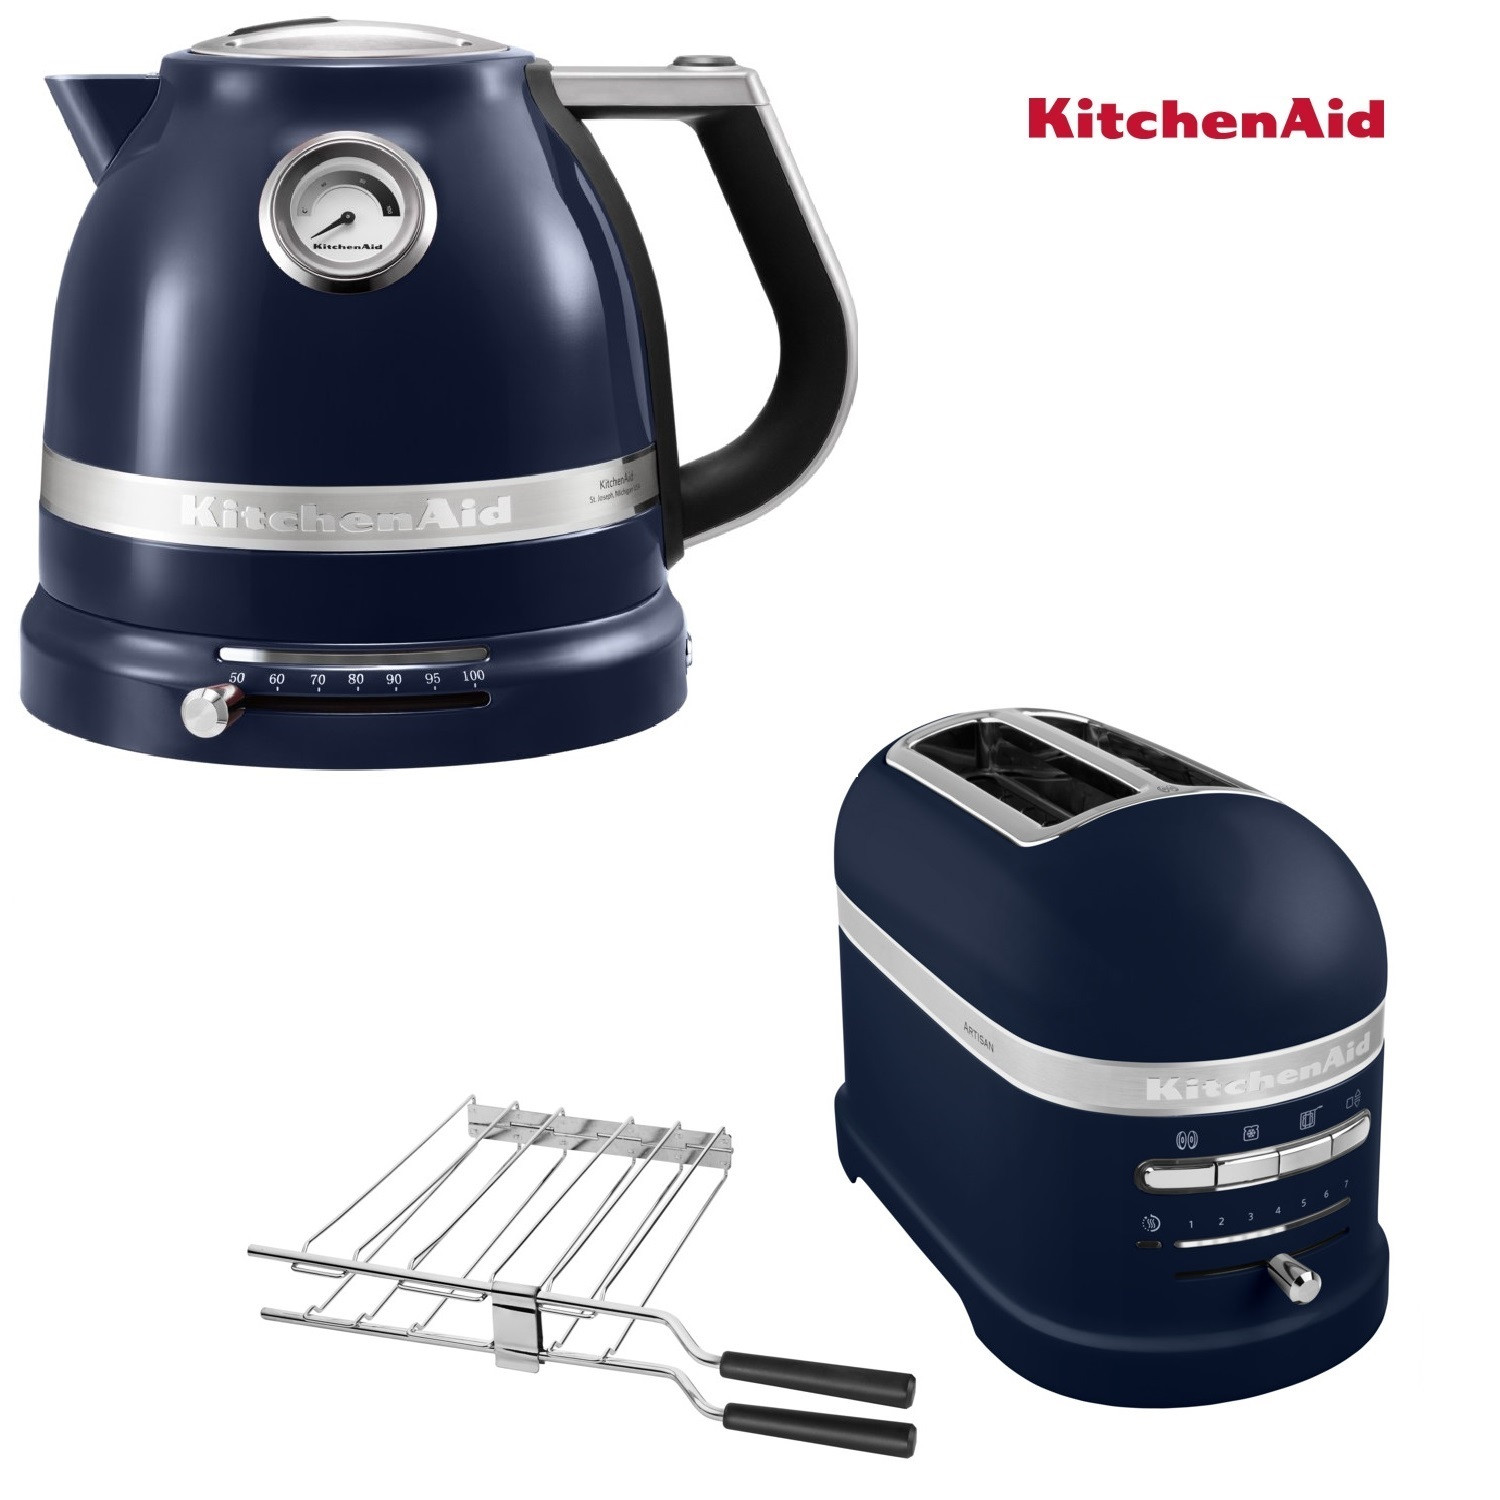 KitchenAid Artisan Wasserkocher + Toaster ink Blue